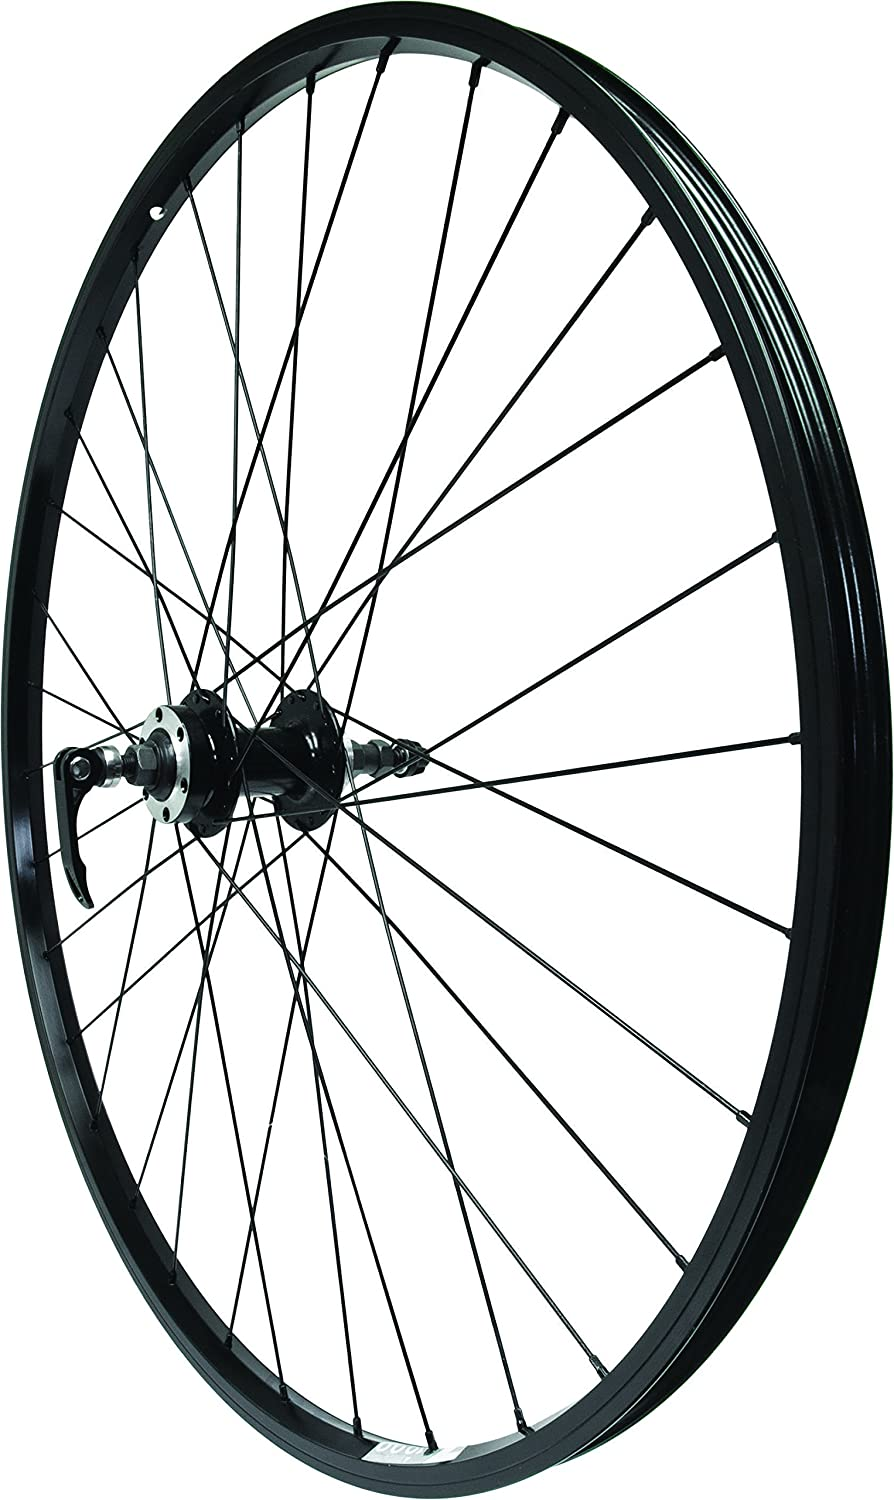 Wheel Al 26 Fwheel Alex Z1000 Qr 6-Bolt Black